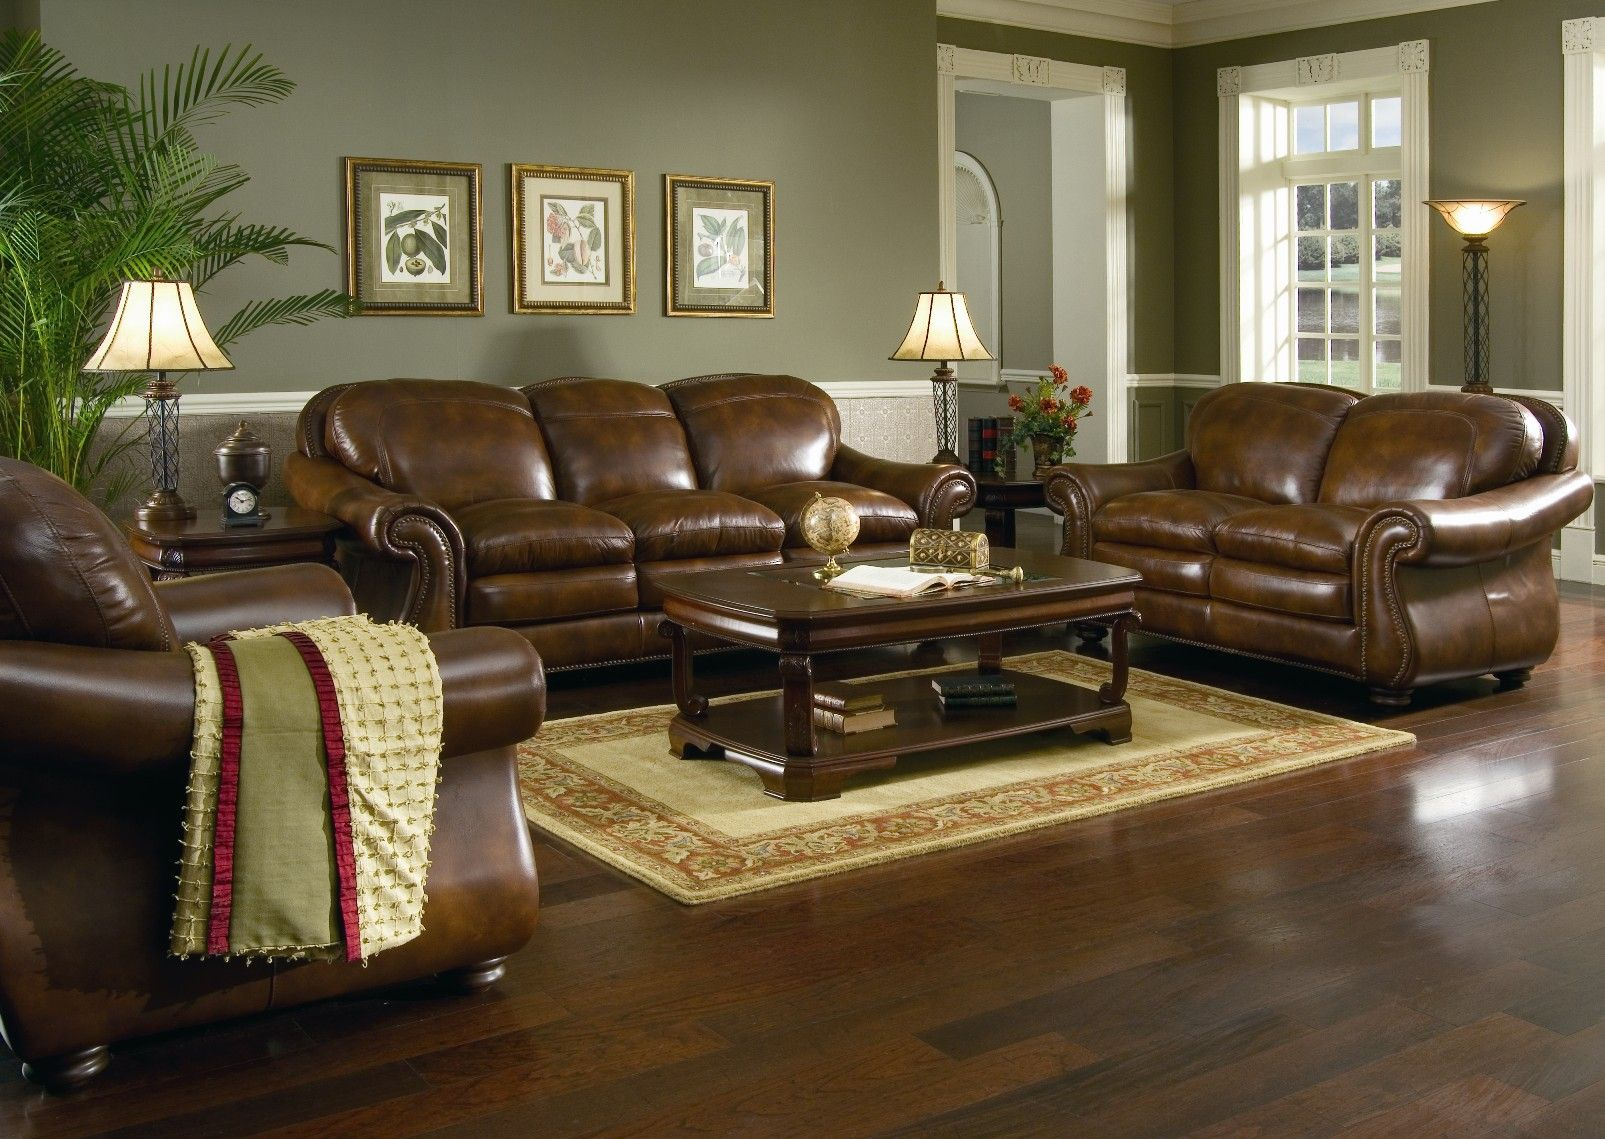 living room color ideas for brown furniture brown leather sofa set for living room with dark hardwood AHHUNCS